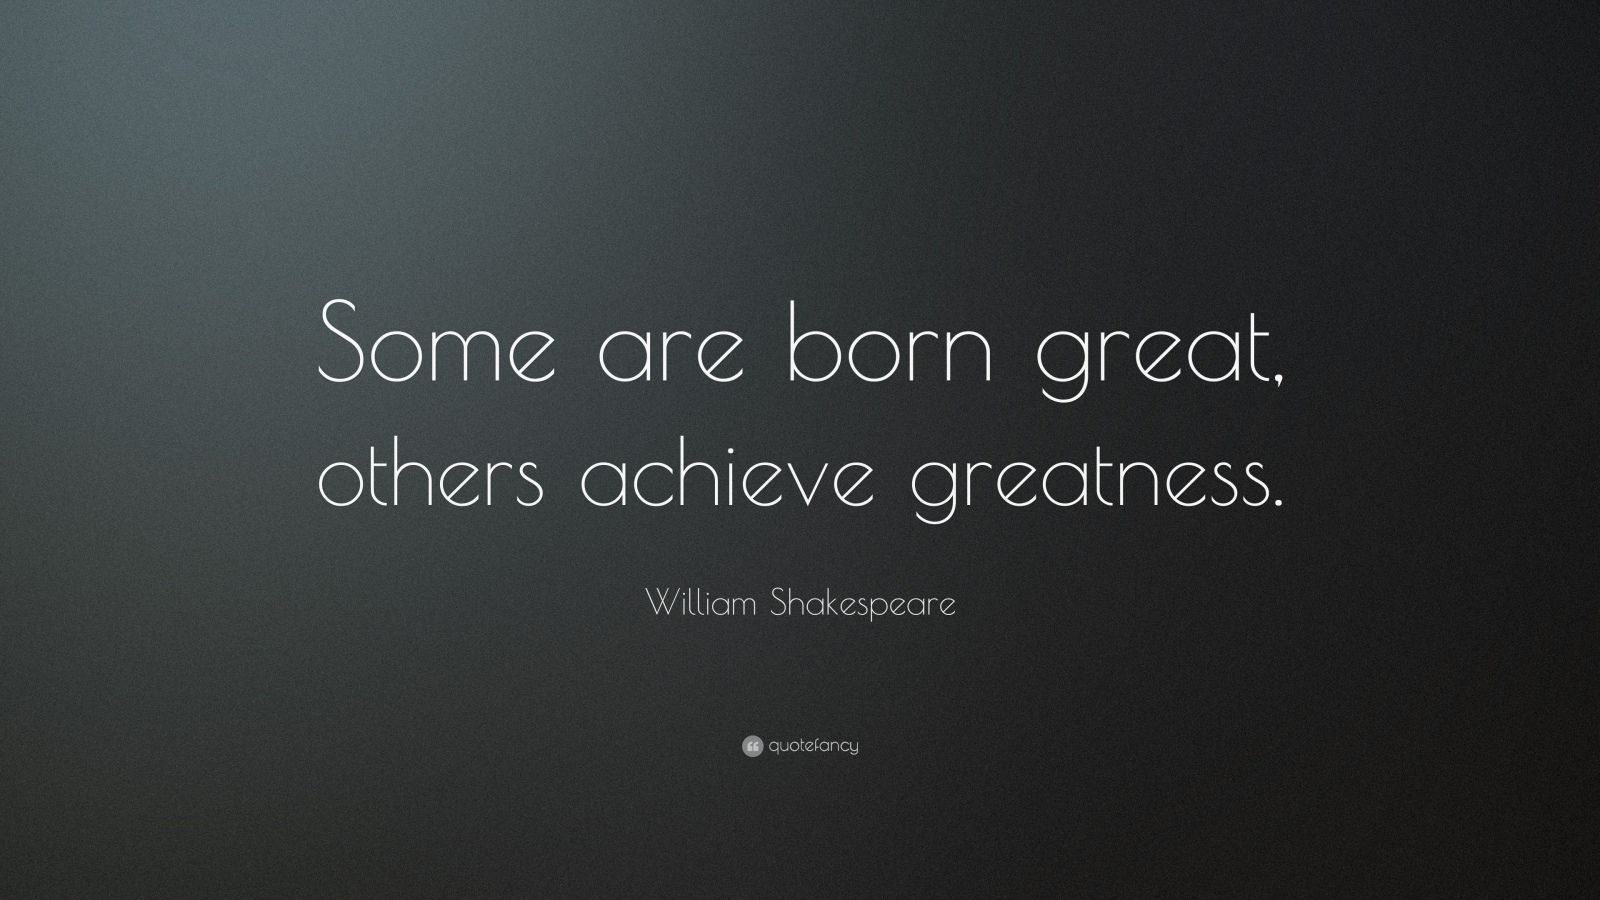 Image Result For Shakespeare Quotes Greatness